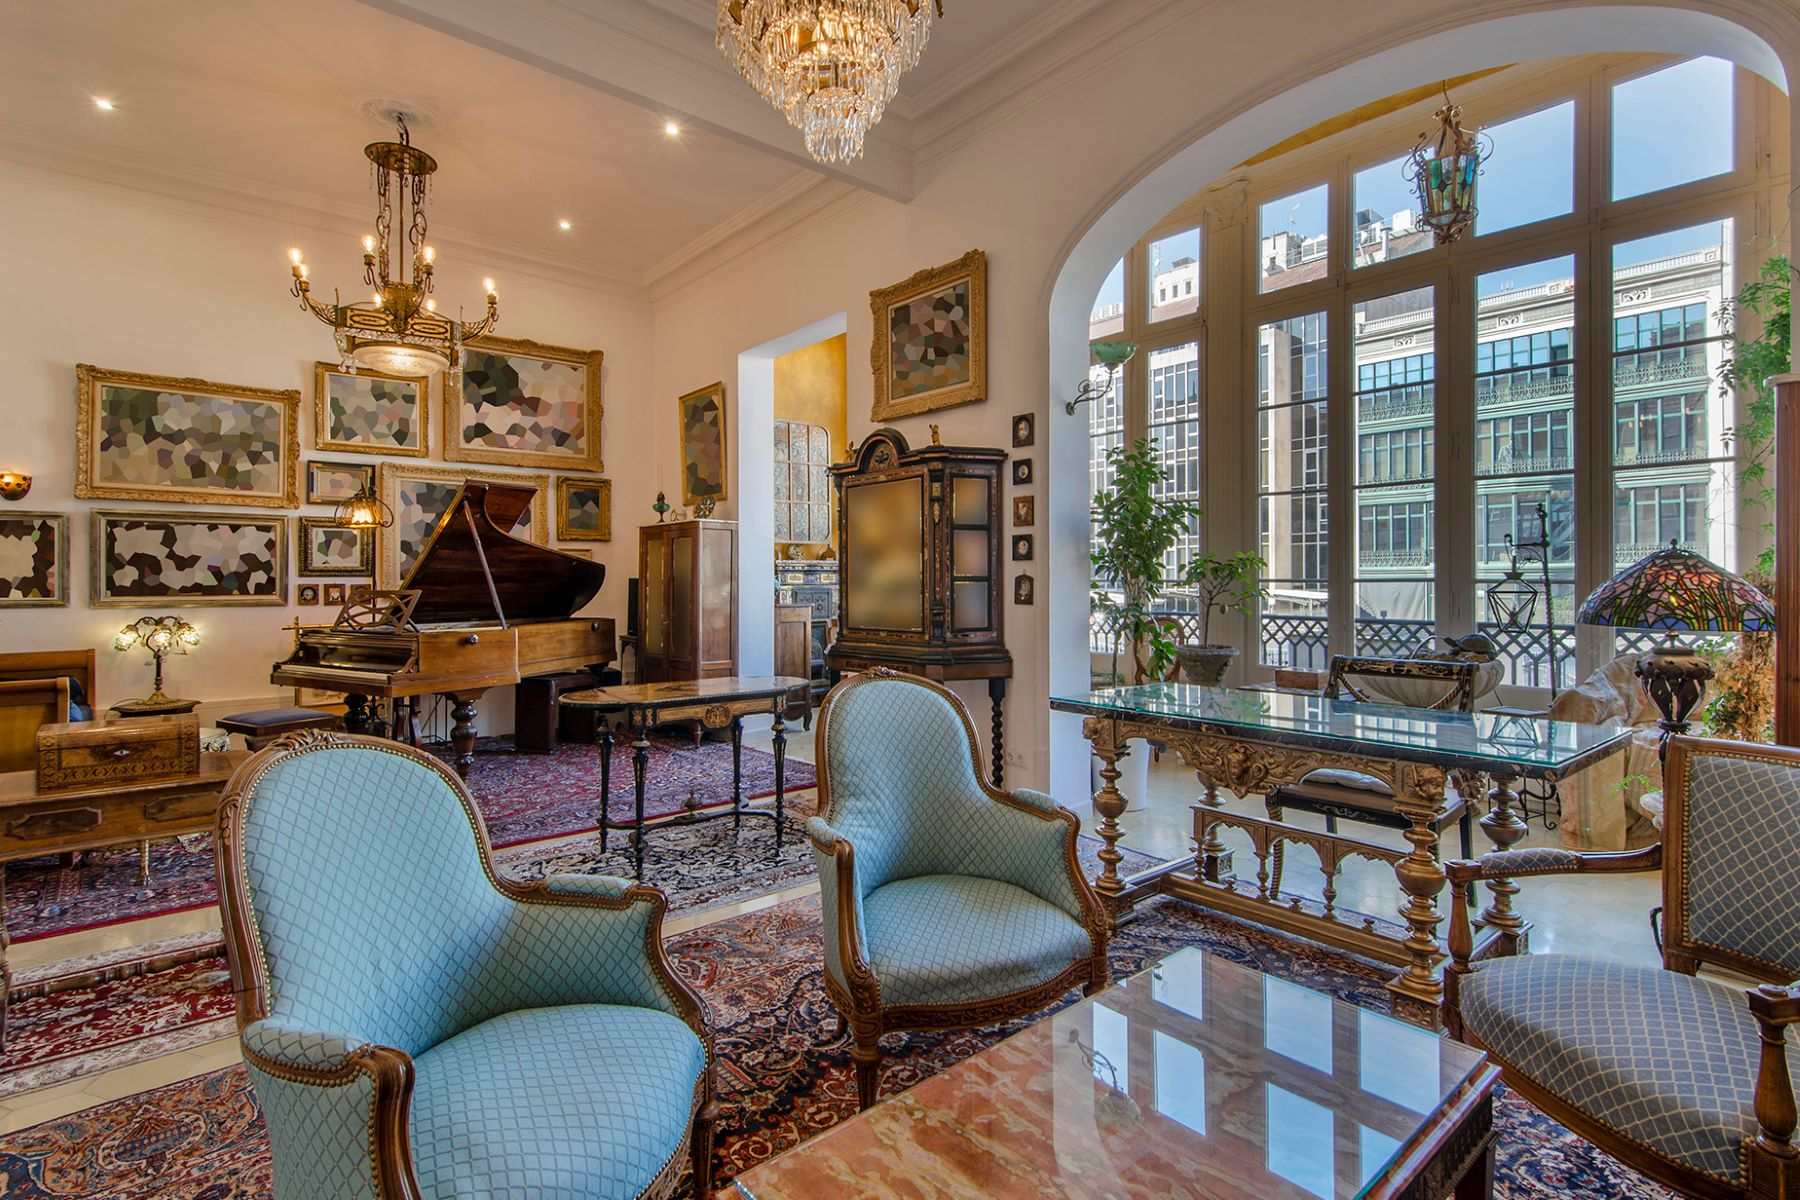 Apartment for Sale at Exquisite Renovated Apartment in a Classic Building in L'Eixample Dret, Barc ... Barcelona City, Barcelona, 08007 Spain